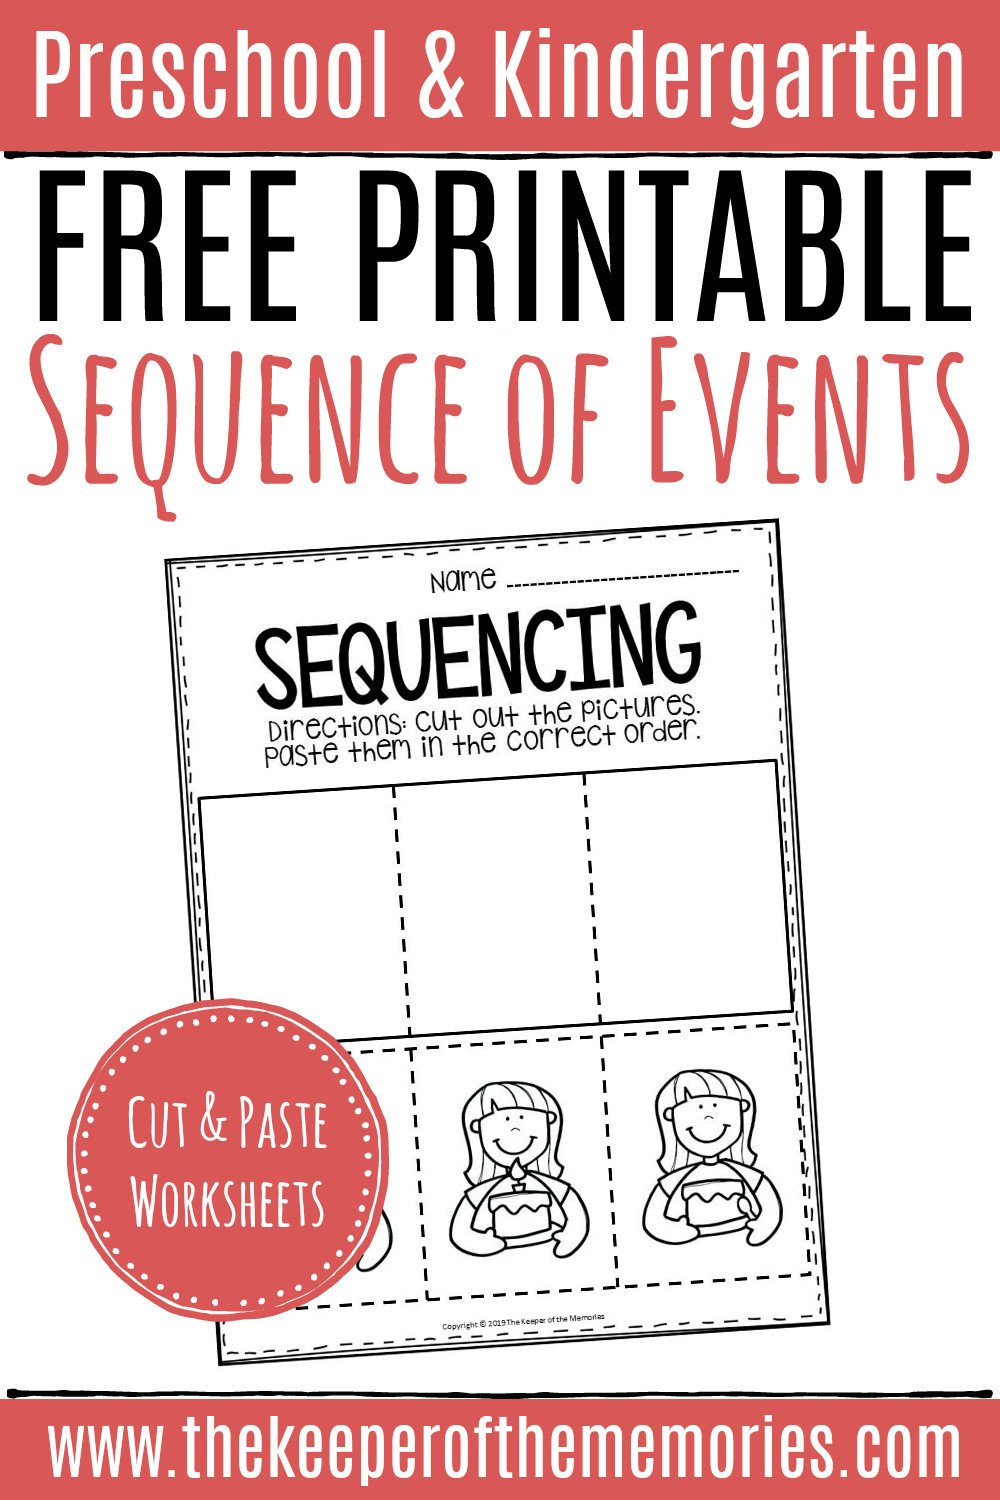 Sequencing Worksheets 5th Grade Free Printable Sequence events Worksheets Sequencing Cut